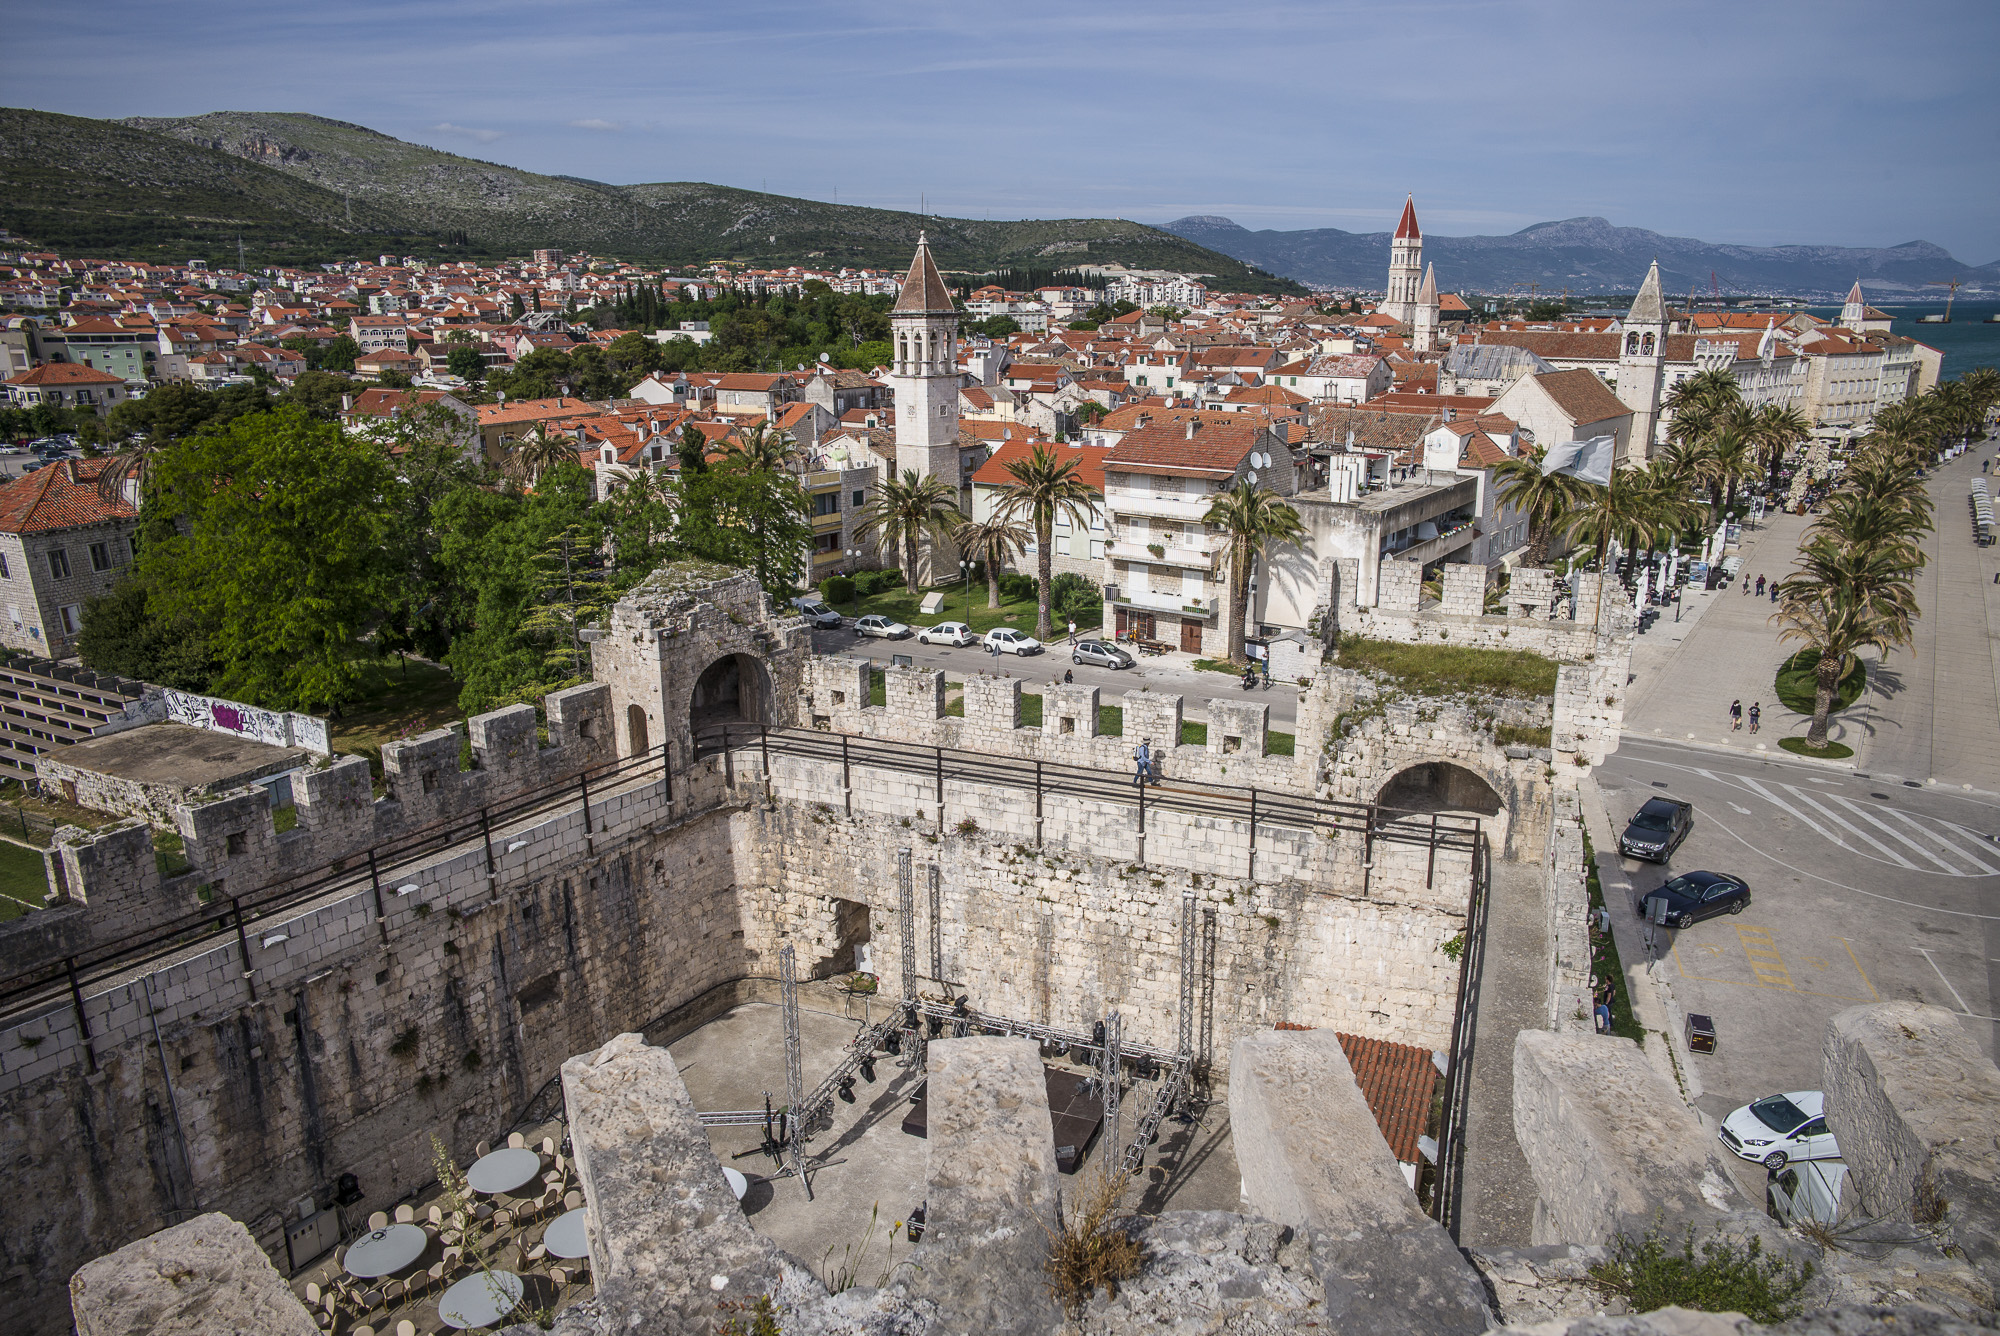 Trogir as seen from the fortified walls. What a great venue for a wedding!!